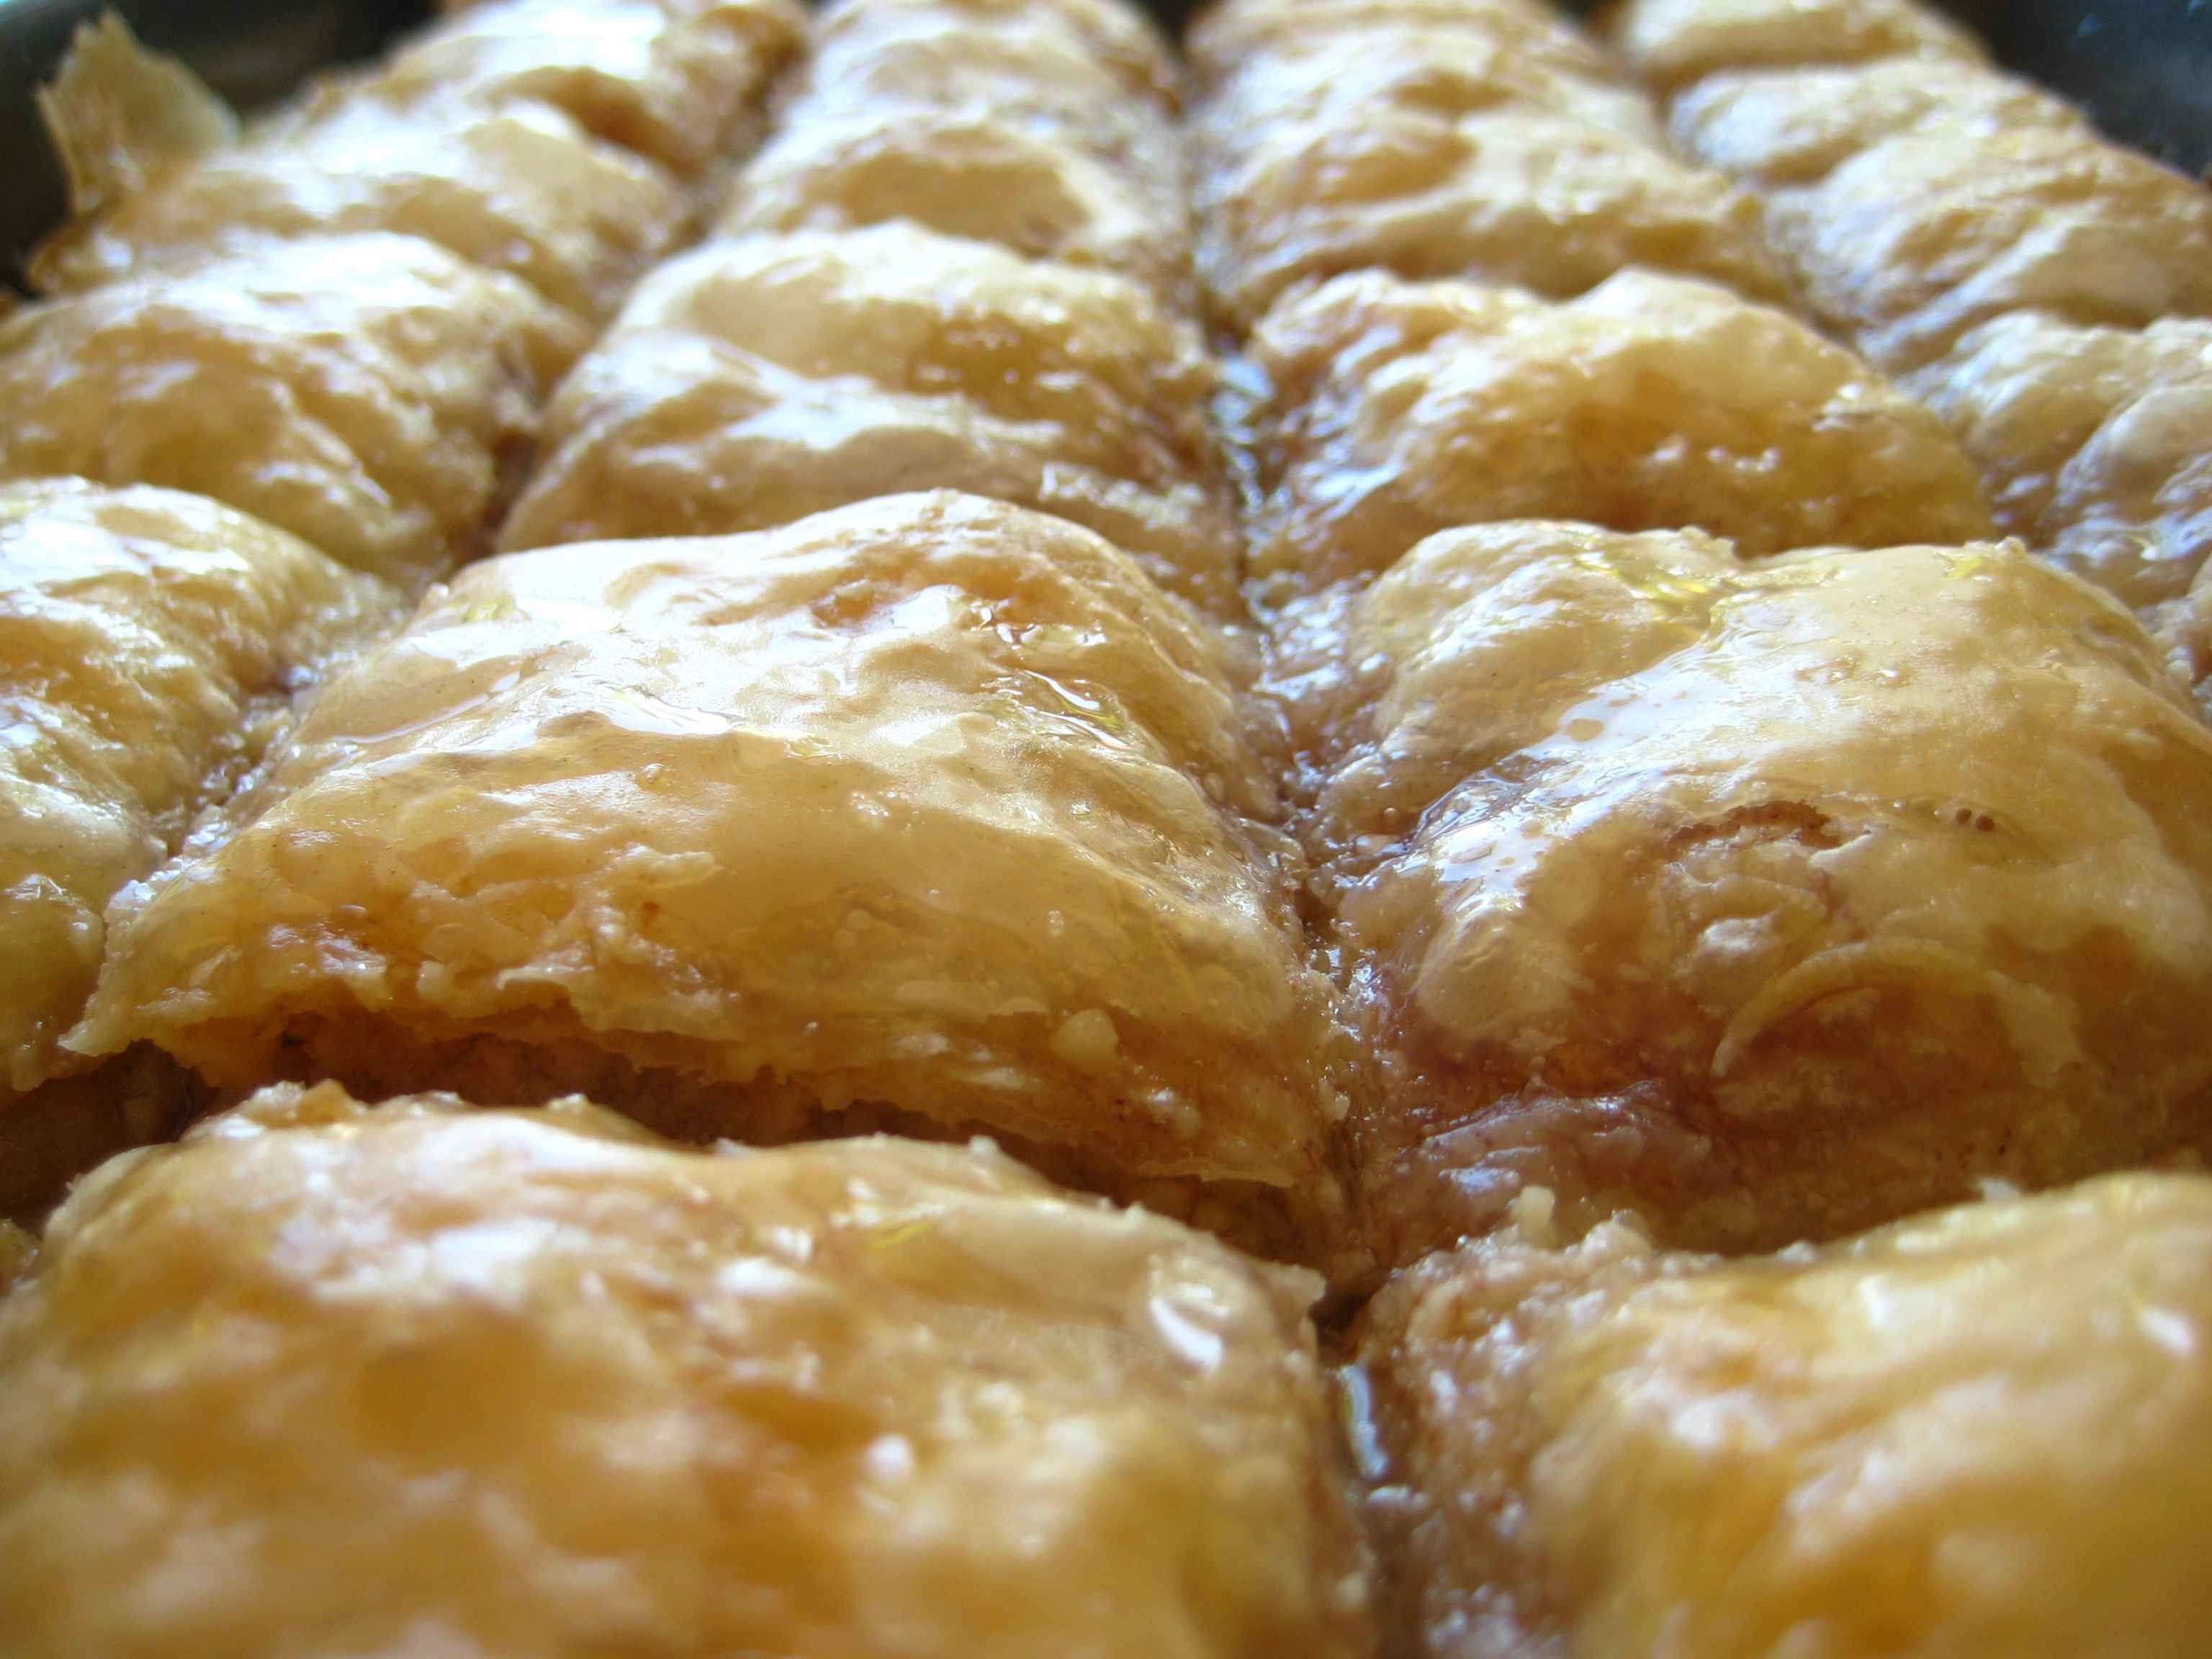 Phyllo Dough Desserts Recipes  filo pastry recipes desserts